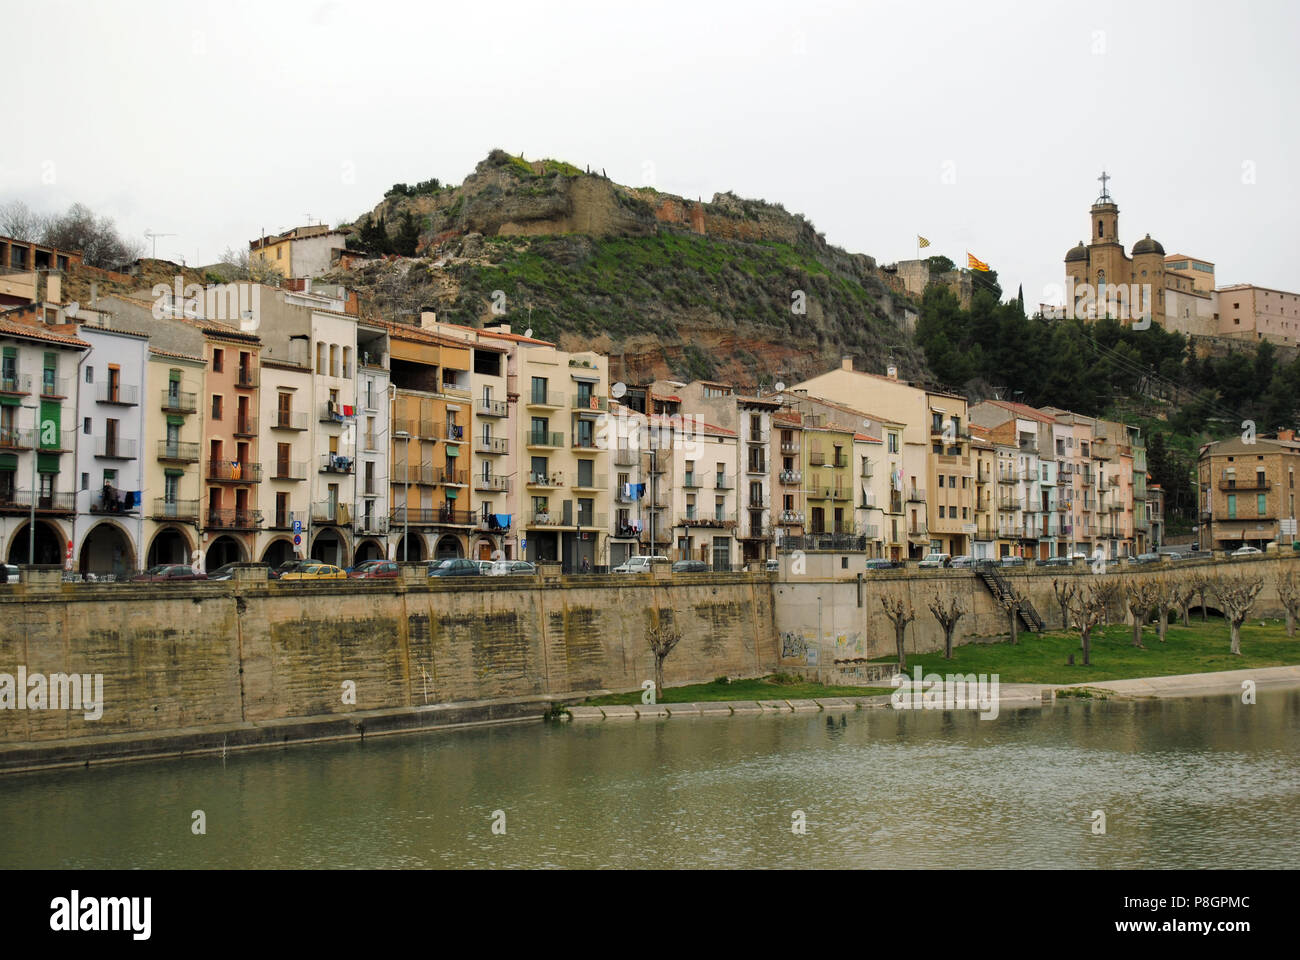 The River Segre and some typical residential buildings in Balaguer, Catalonia, Spain. - Stock Image